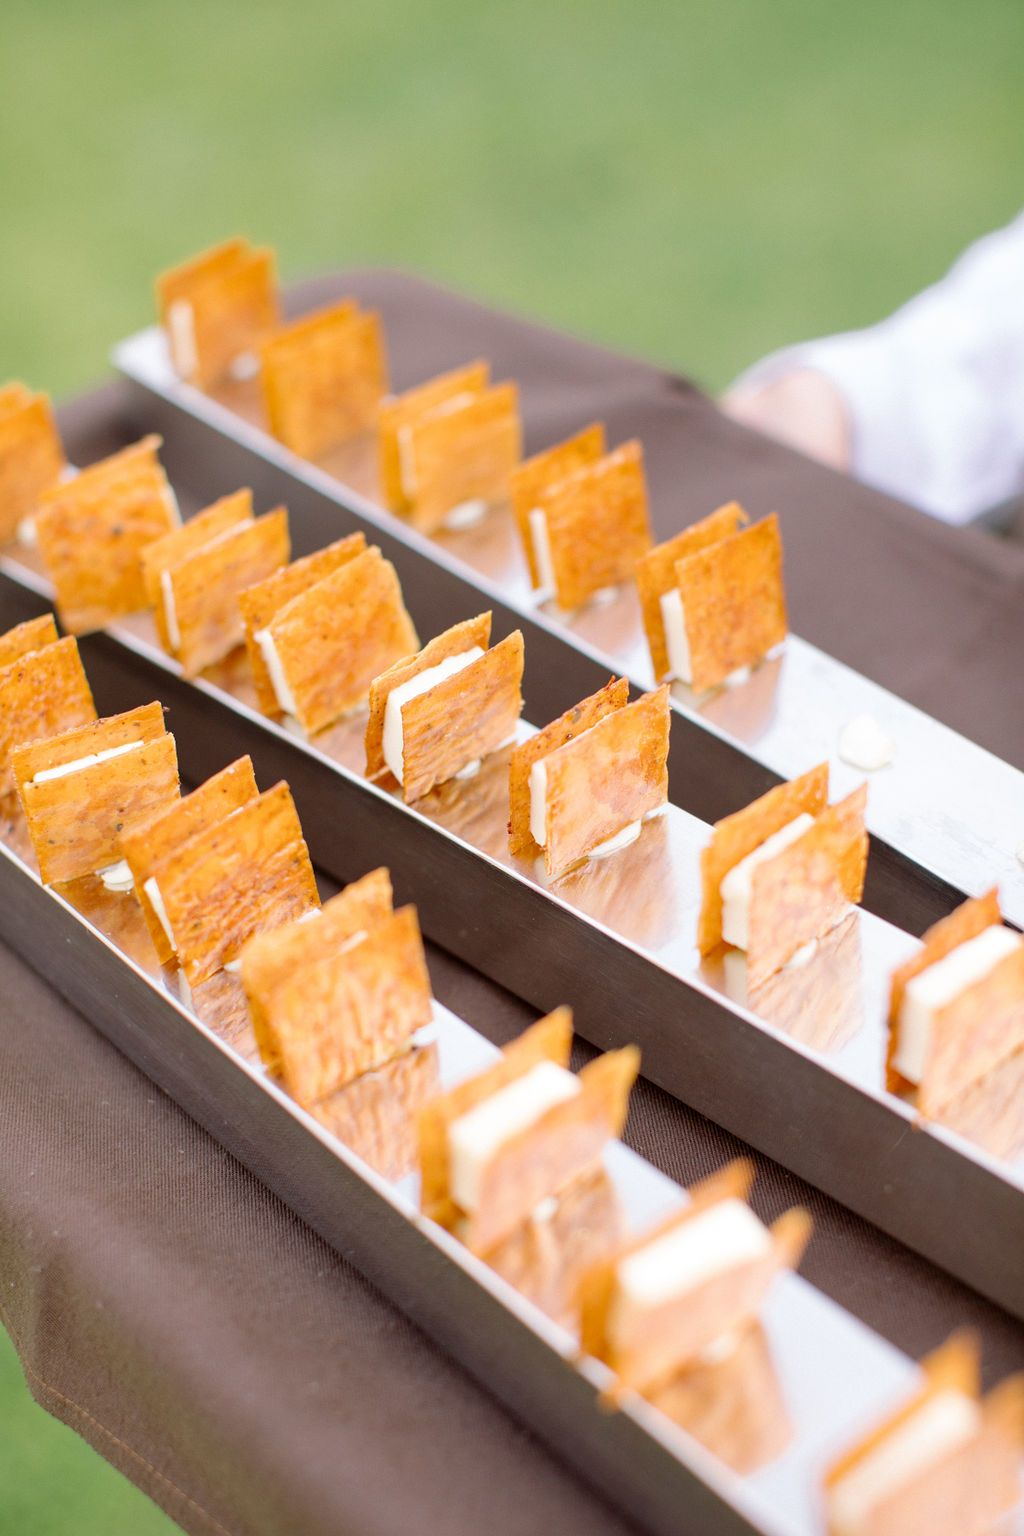 Tasty cocktail bites catered by Catering Sensacions